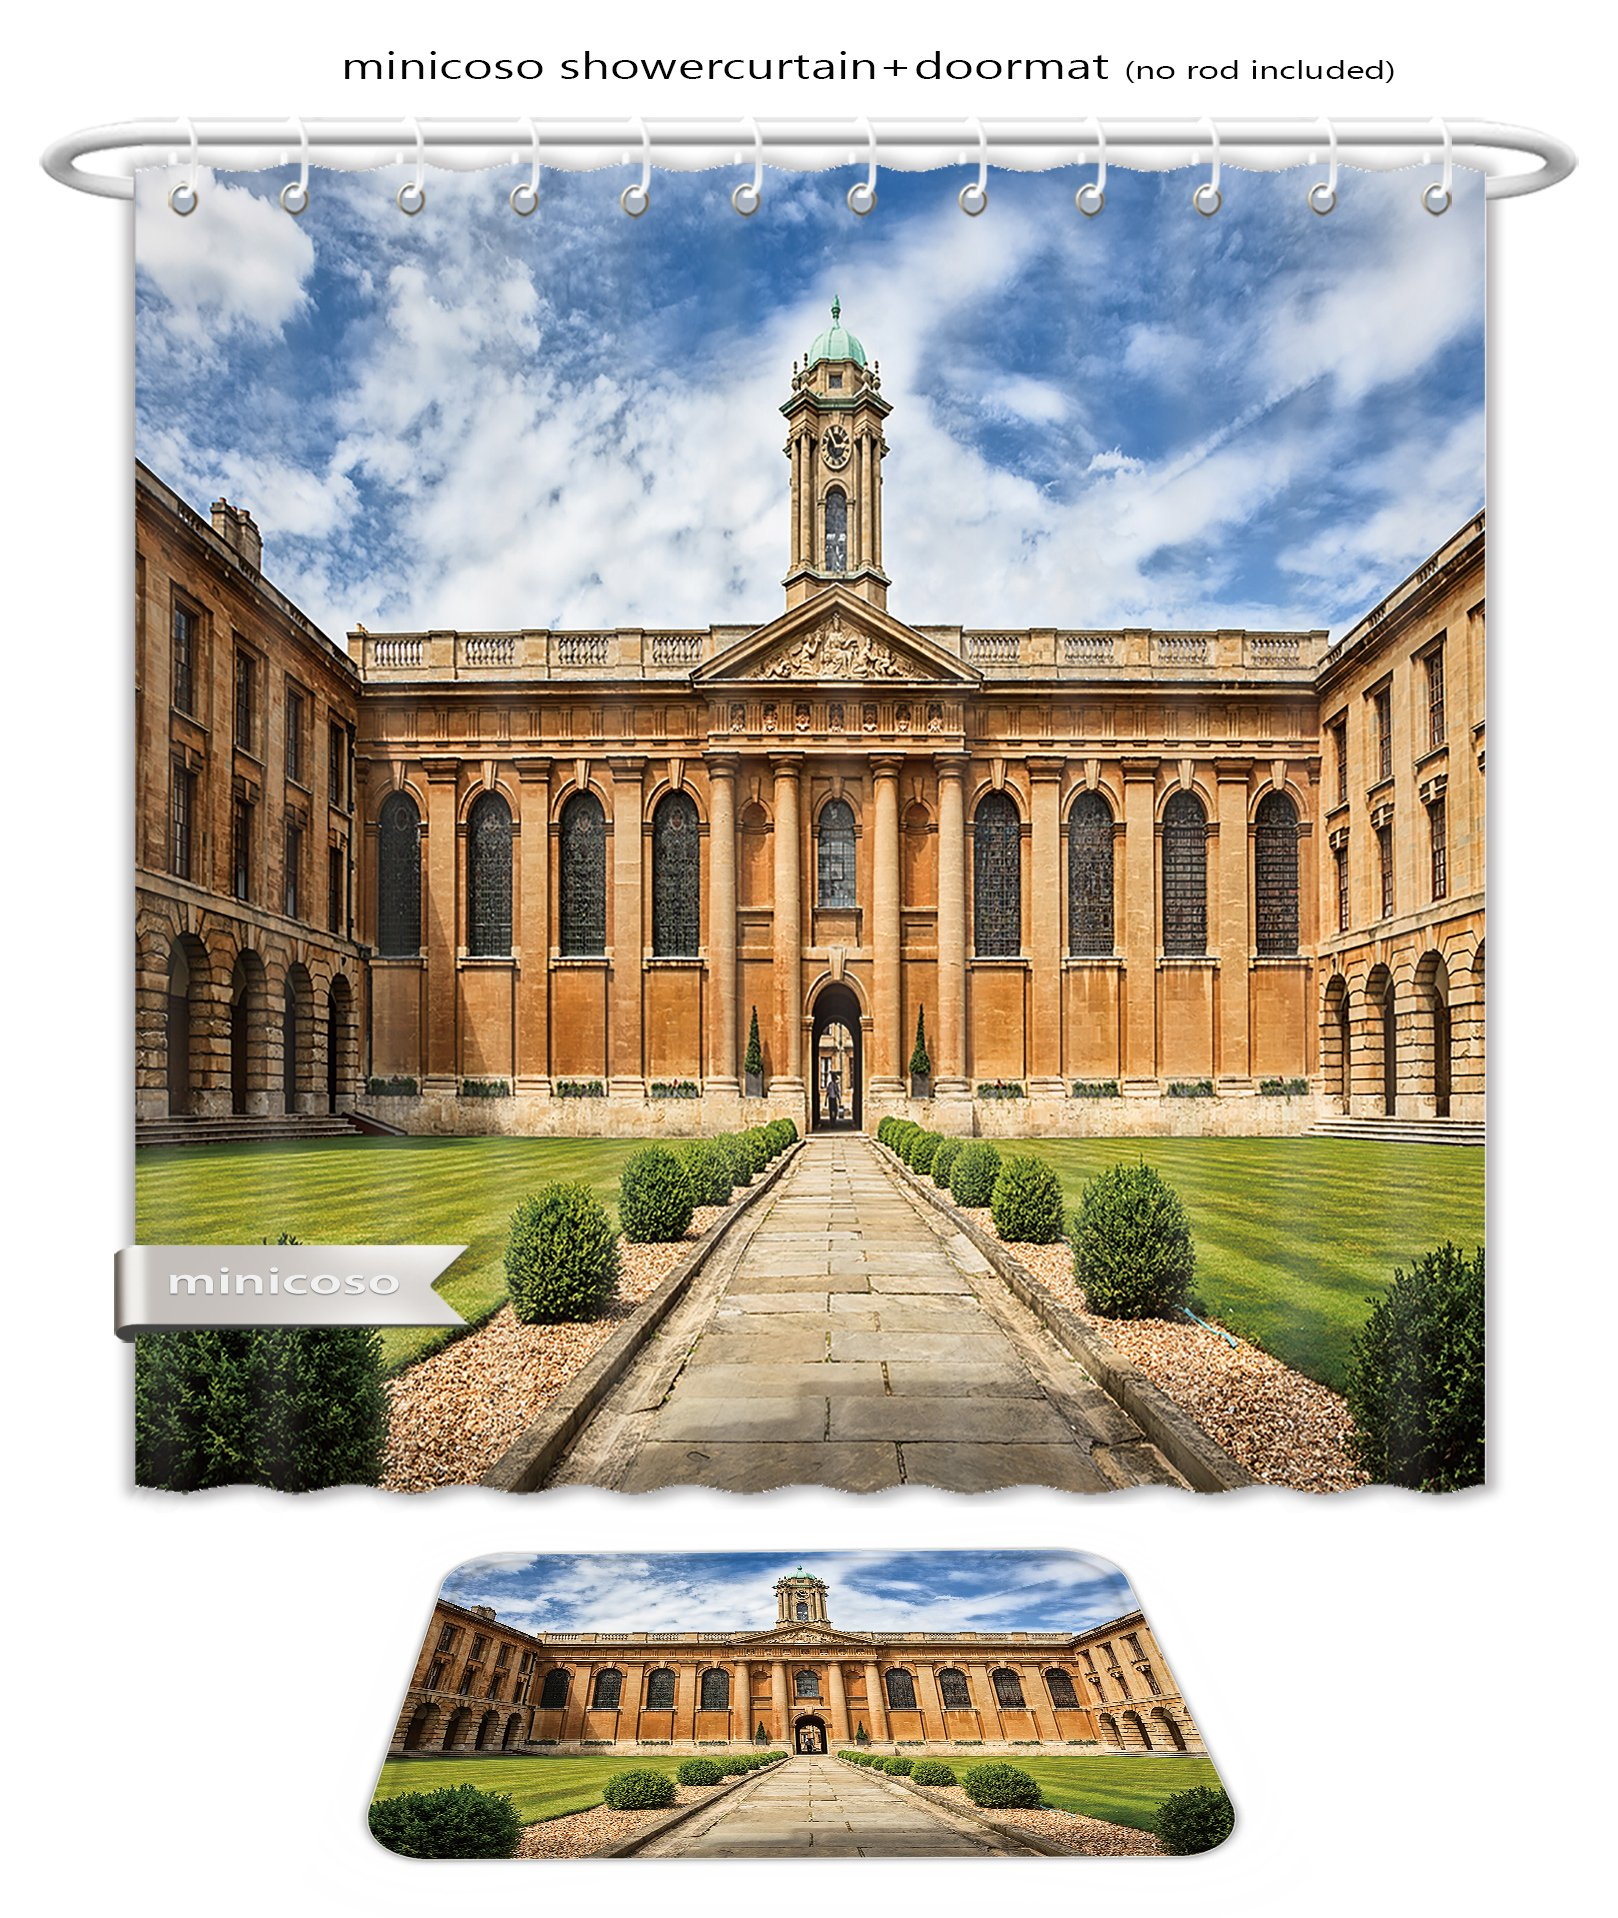 Minicoso Bath Two Piece Suit: Shower Curtains and Bath Rugs Oxford University The Queen S College Shower Curtain and Doormat Set